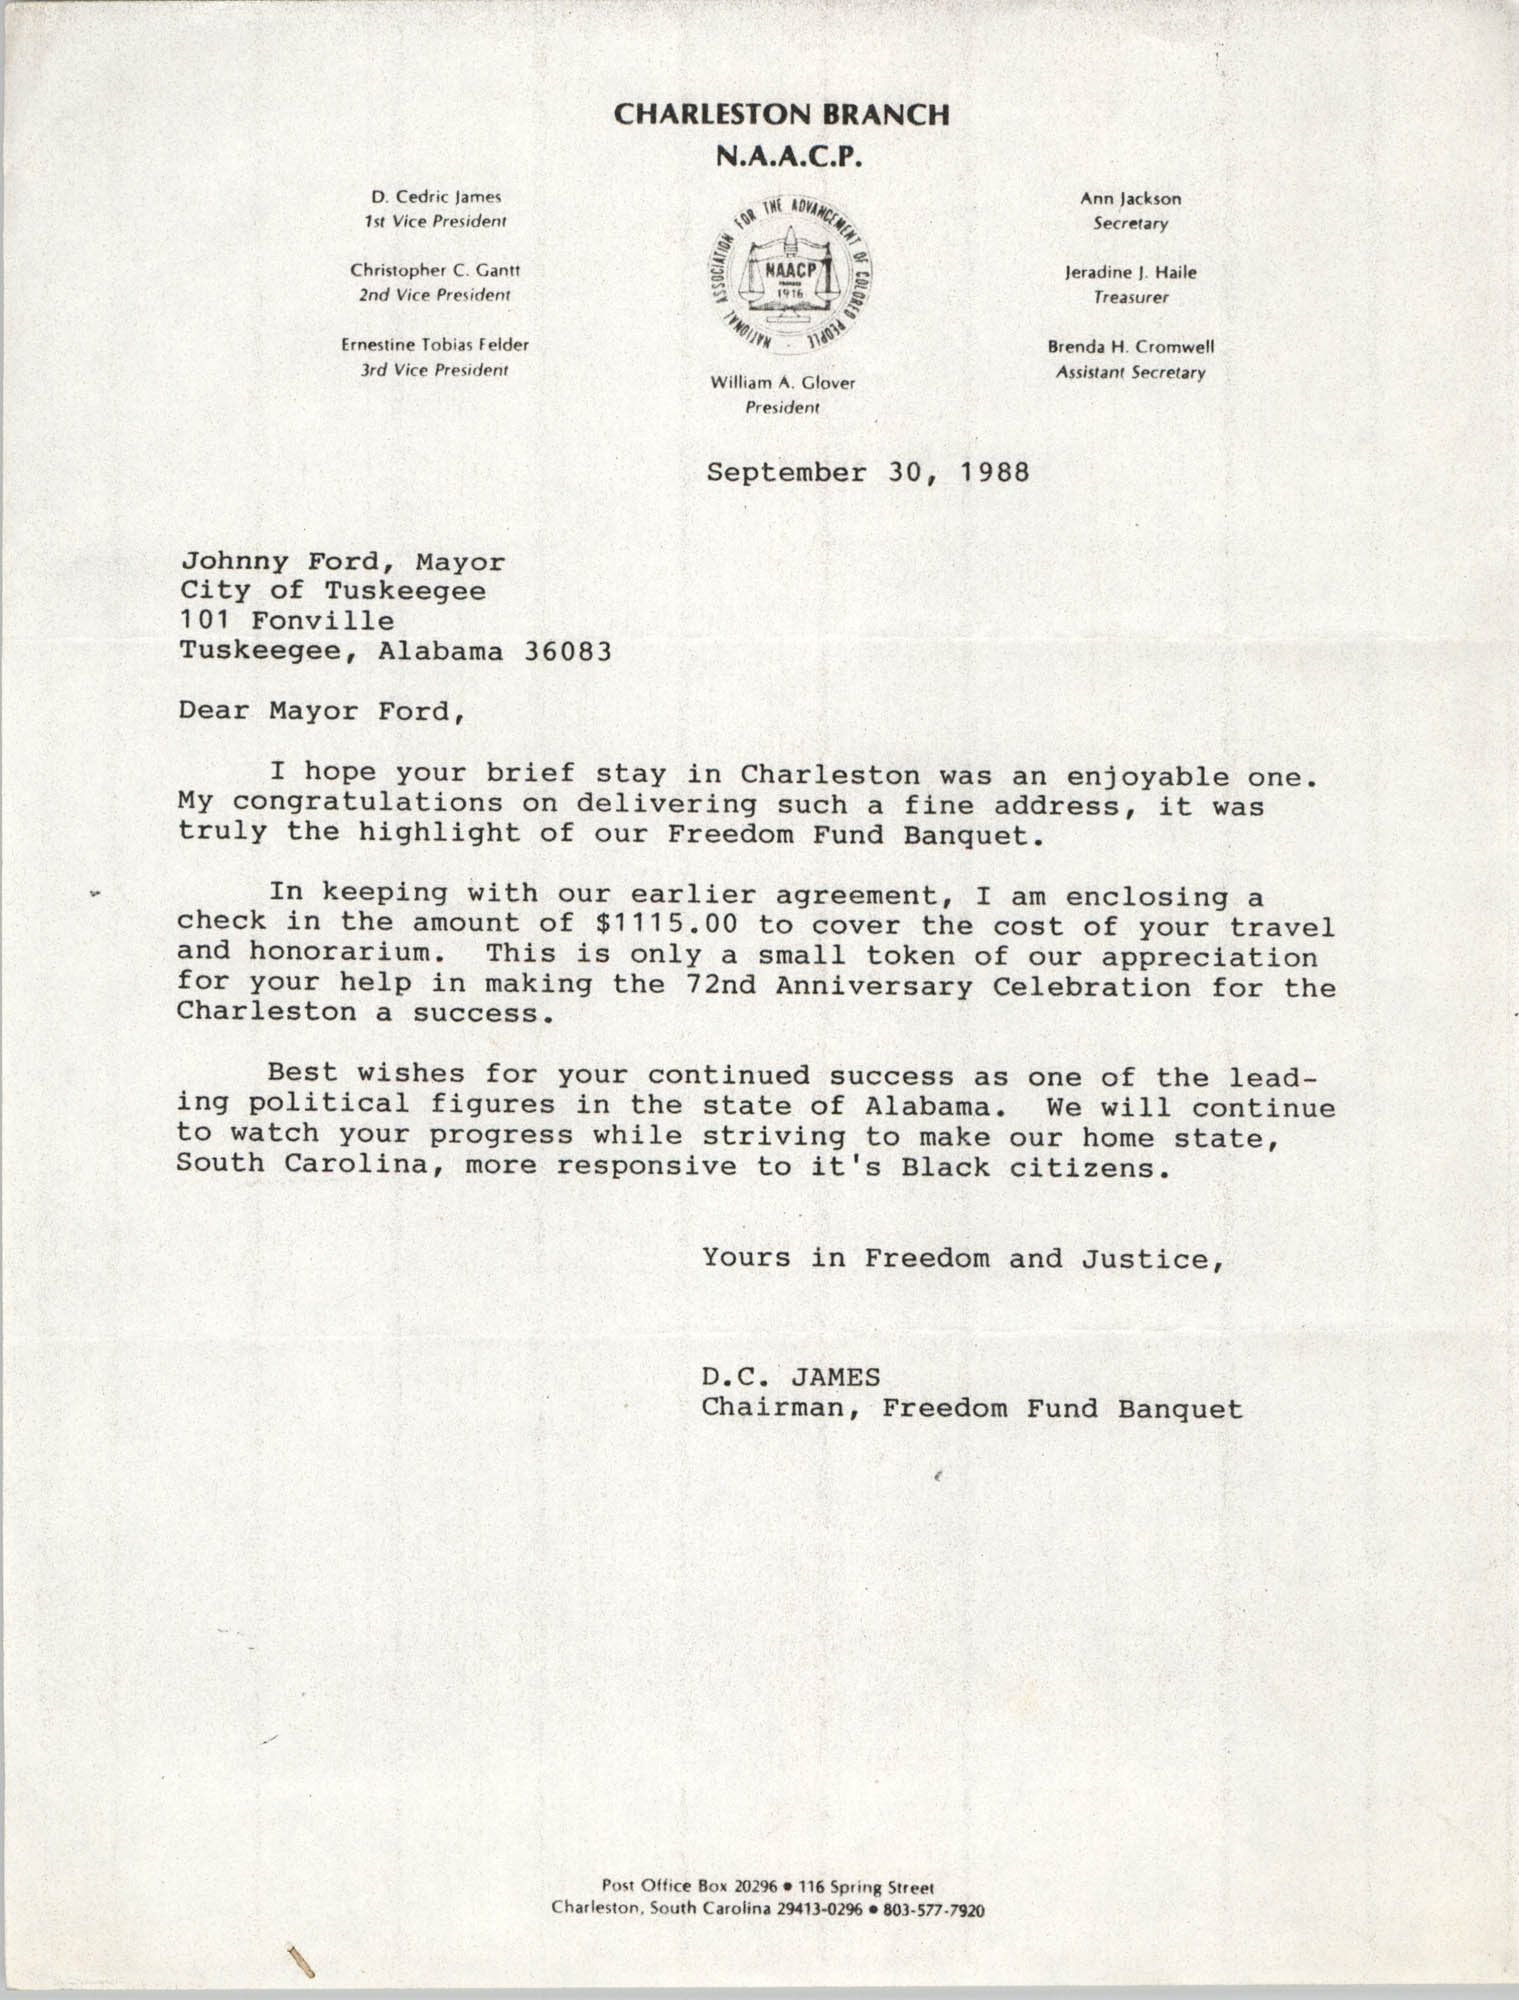 Letter from D.C. James to Johnny Ford, September 30, 1988